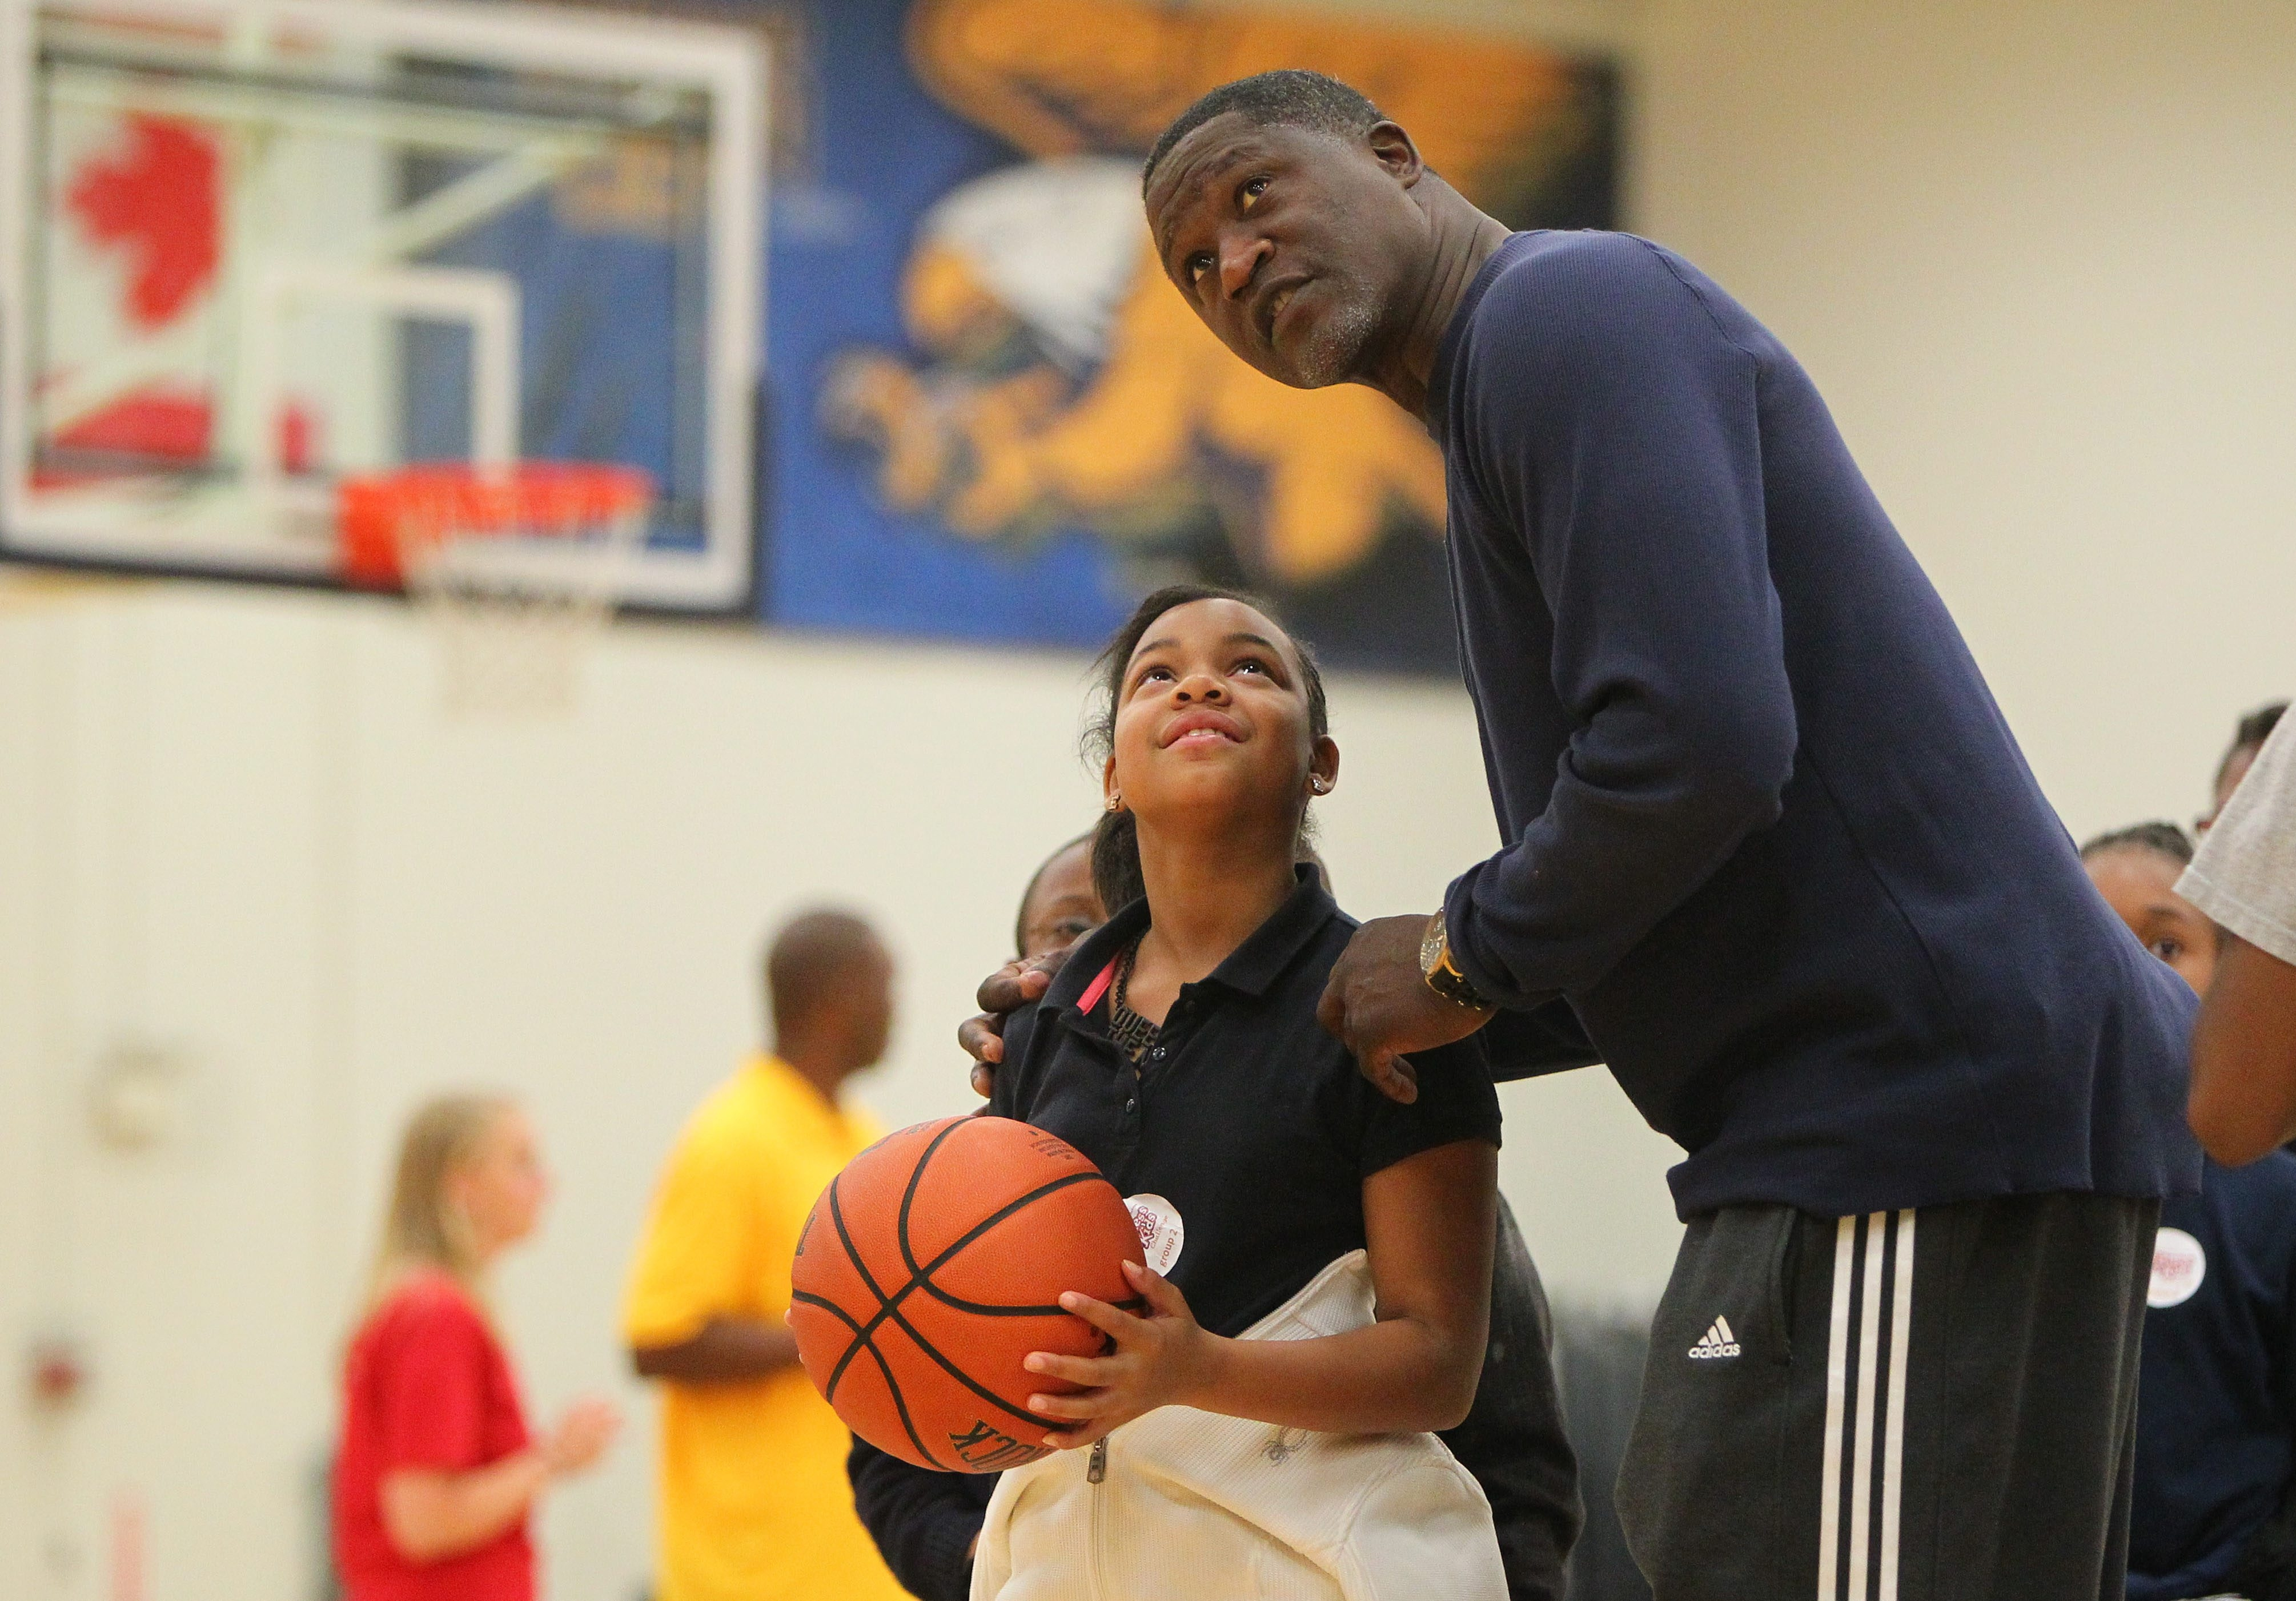 Hall of Famer Dominique Wilkins gives shooting guidance to Enjoli Walerot at Canisius College.